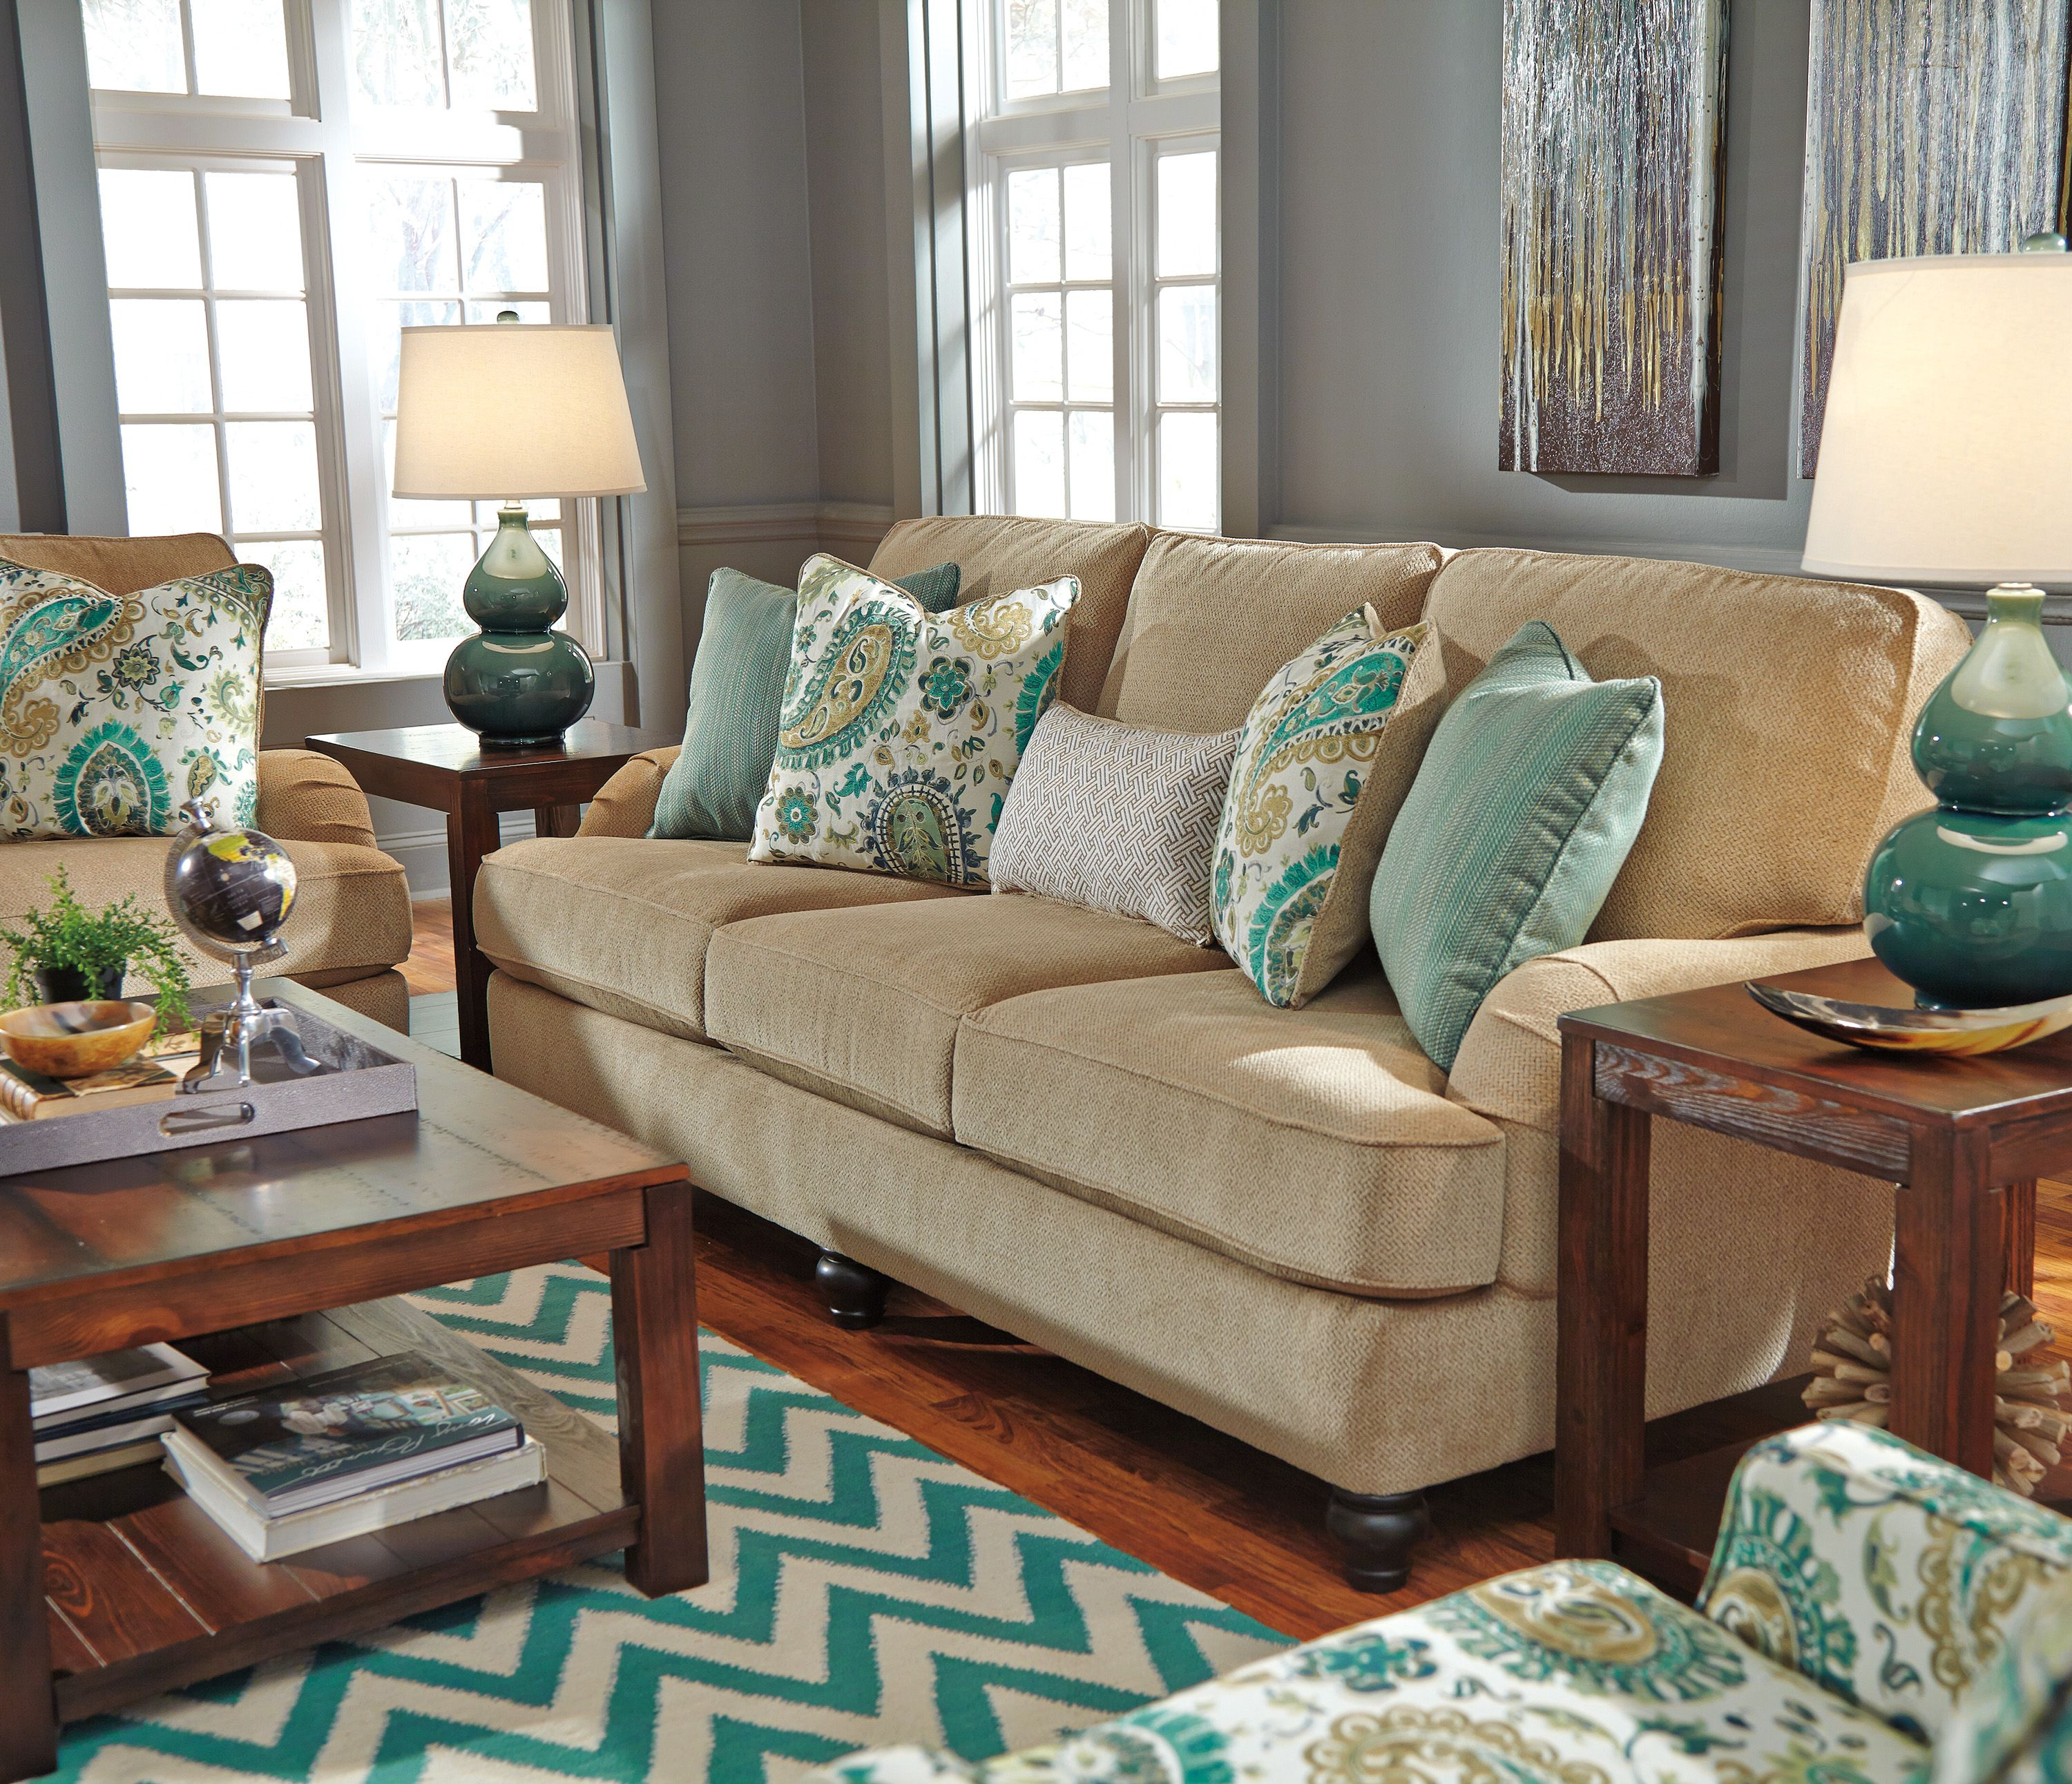 Beautiful Living Rooms On A Budget That Look Expensive: Look At This Beautiful Living Room Collection. The Color